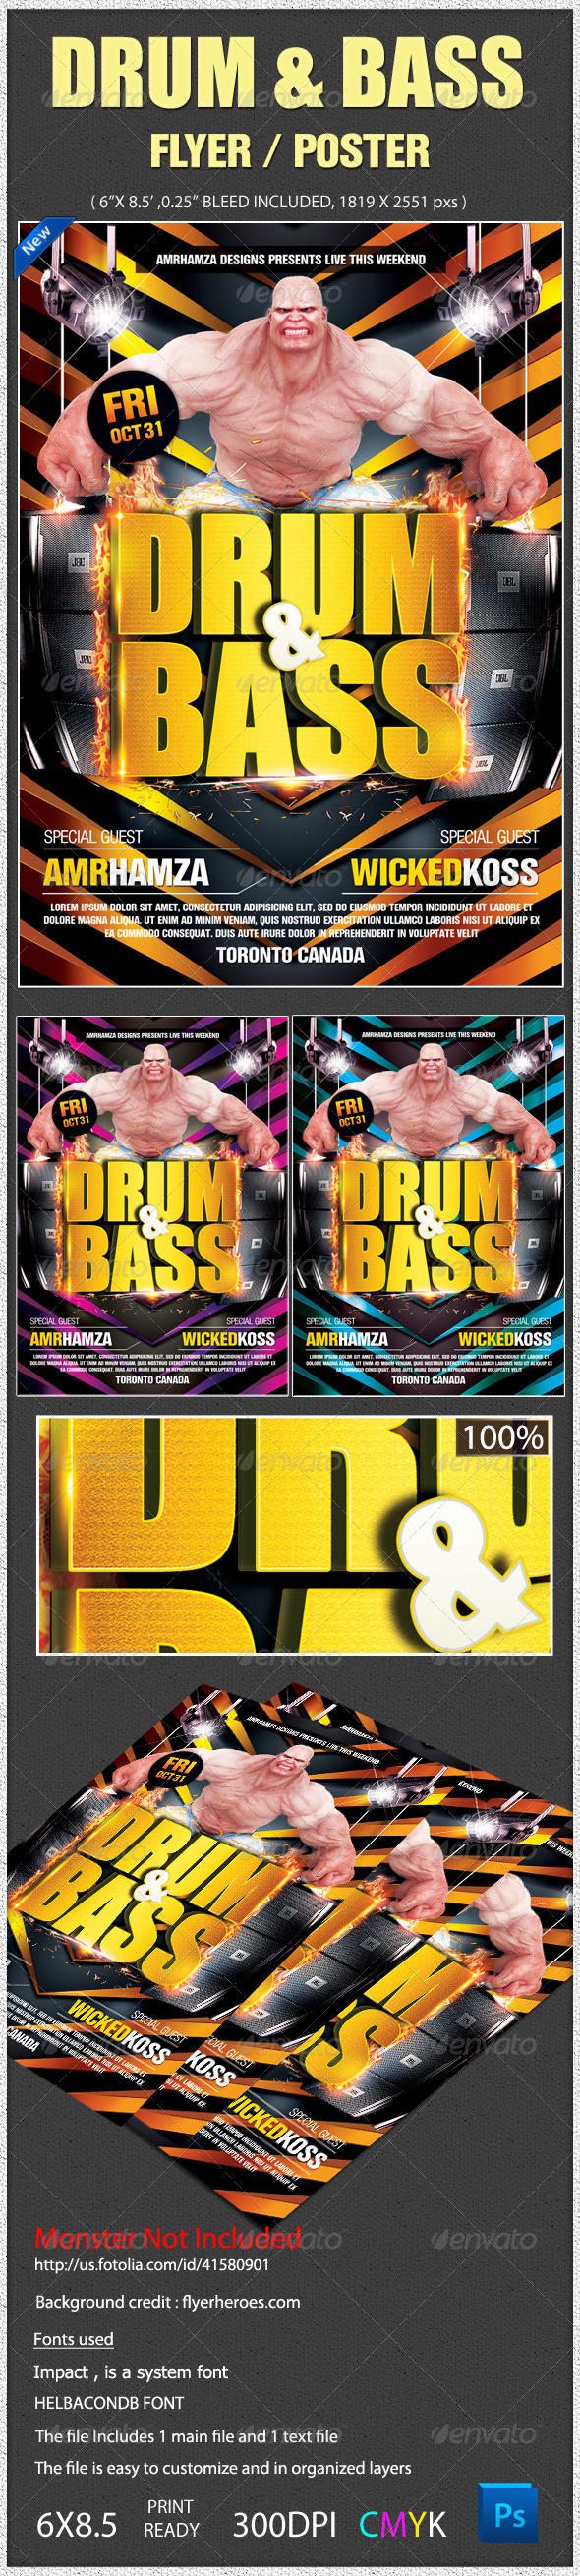 Drum Bass Electro Beats Sound Flyer Poster